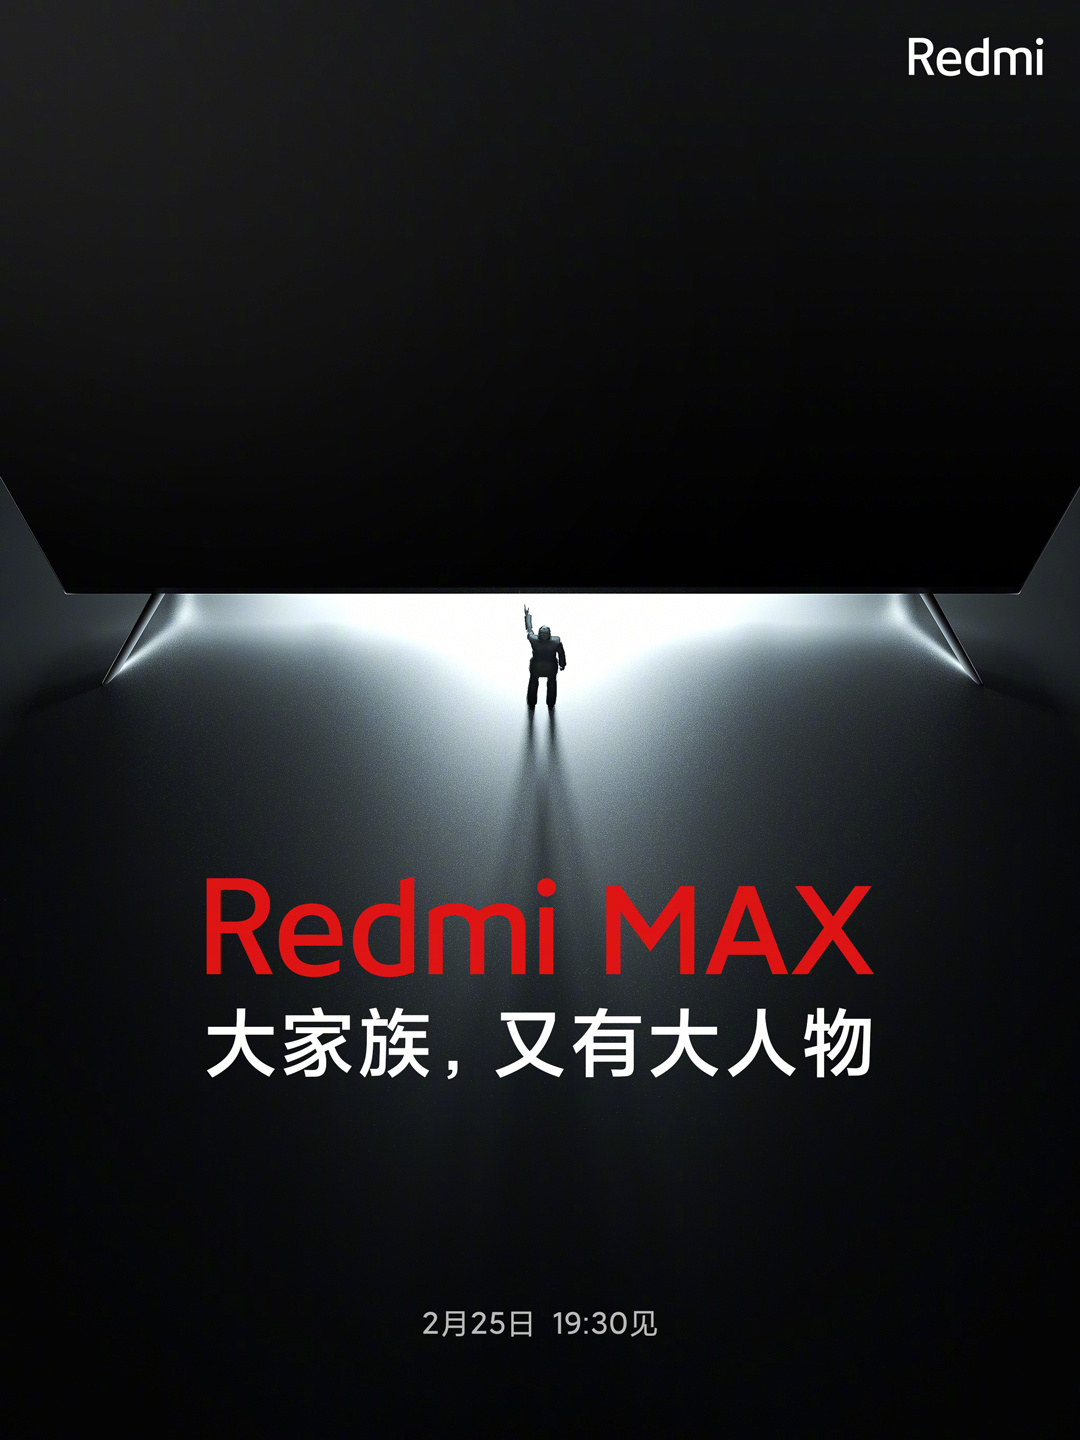 Xiaomi already has its new Redmi Max TV ready and it will exceed 100 inches